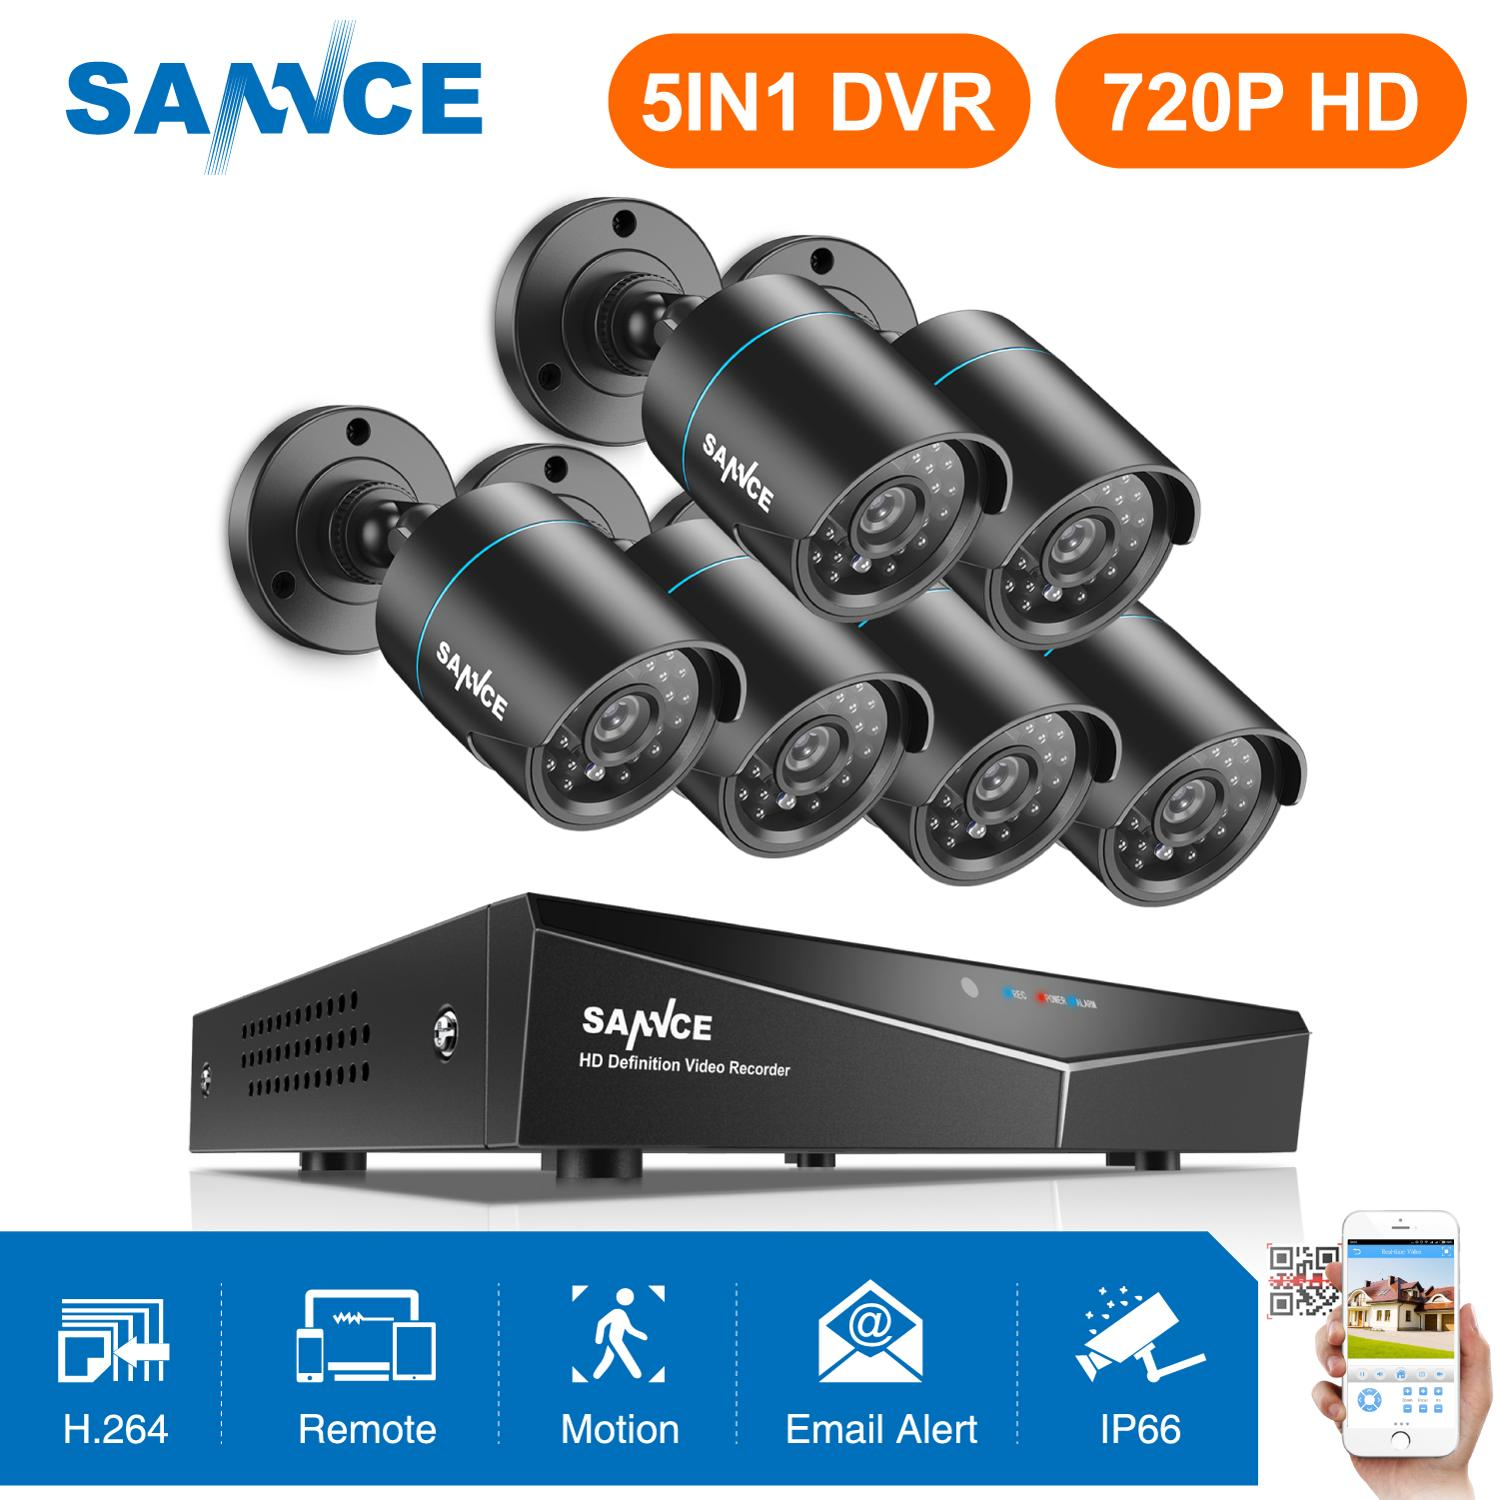 SANNCE 8CH HD 720P Securiry Video System 5IN1 DVR With 6PCS 1280TVL TVI Smart IR Outdoor